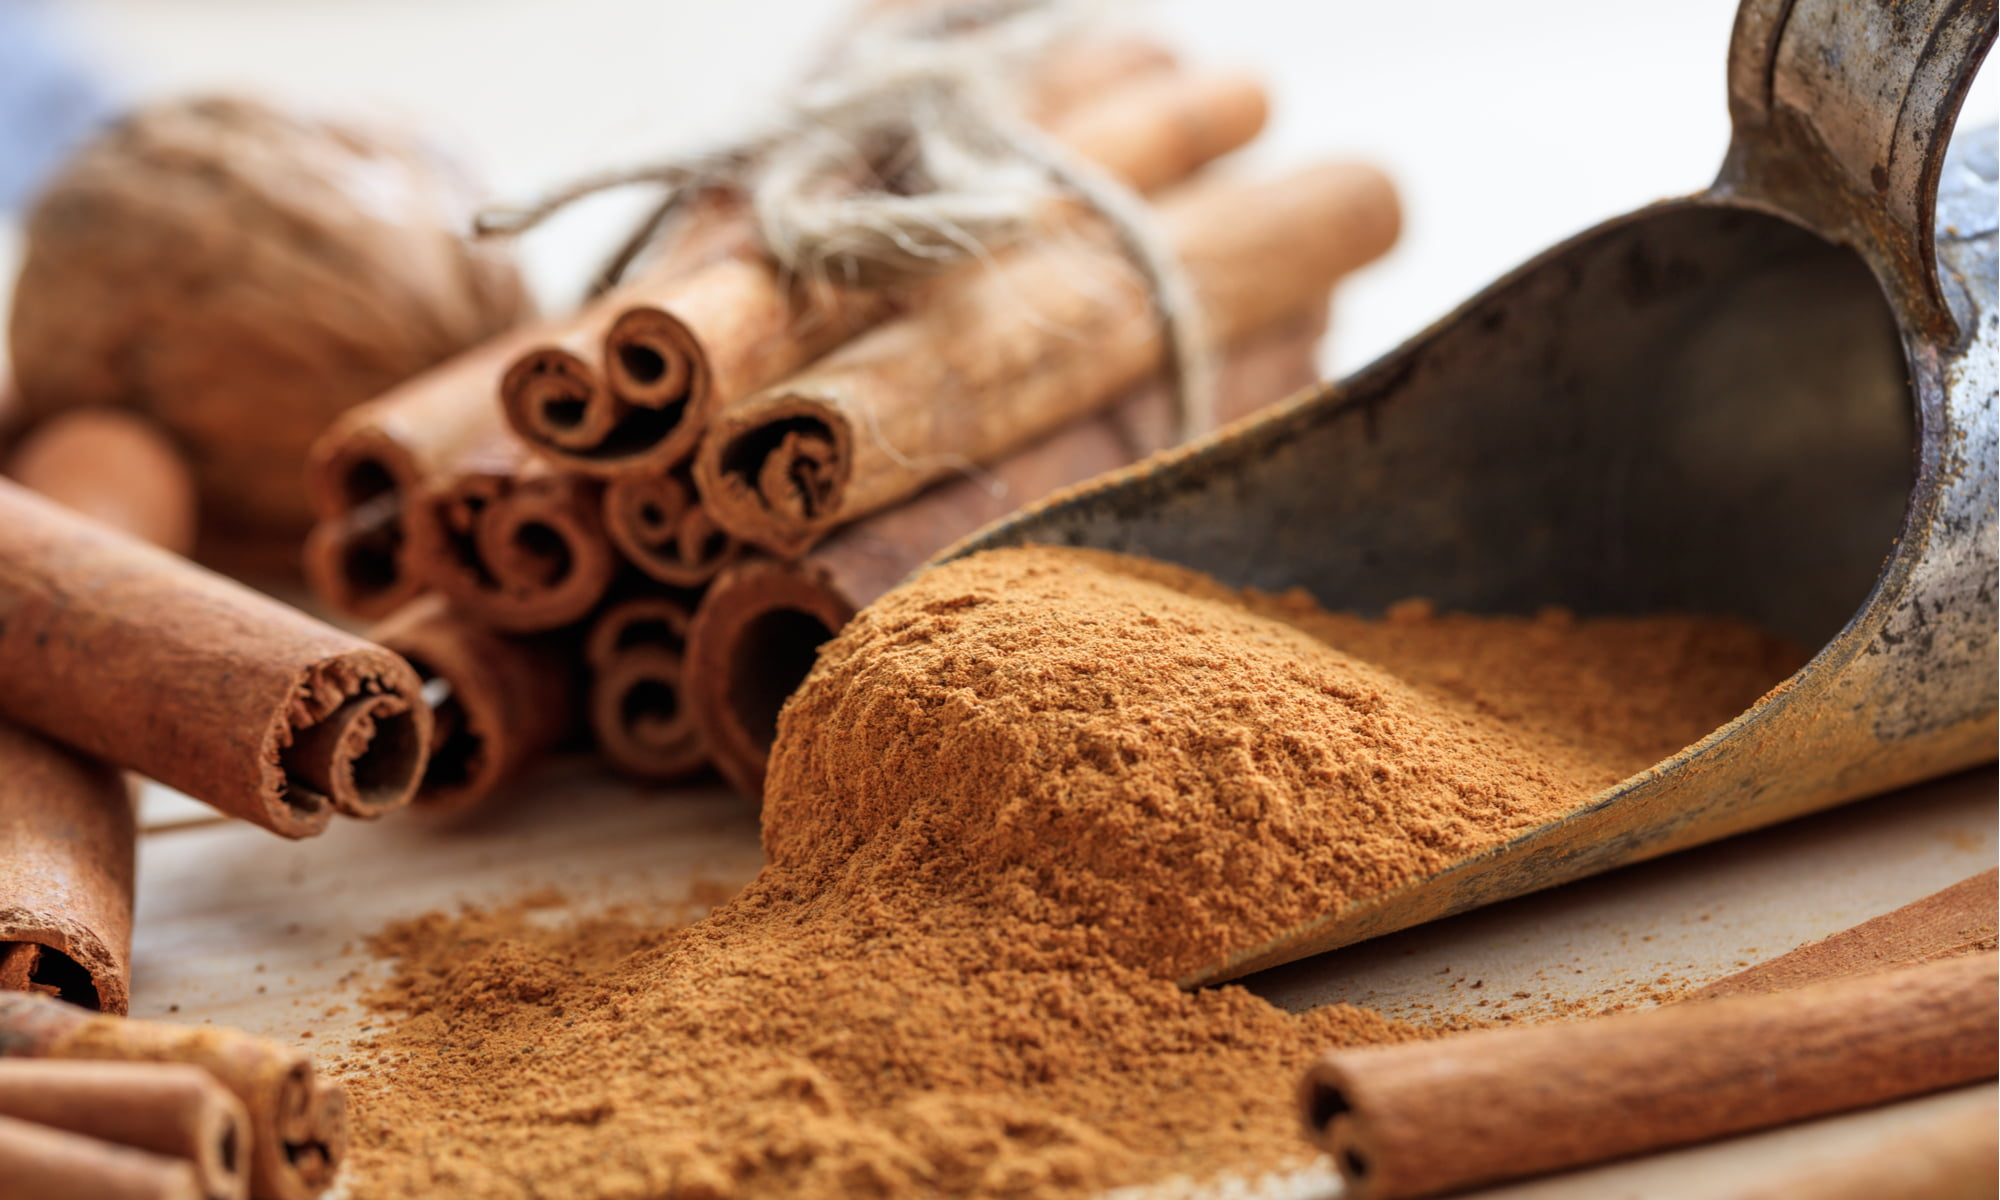 5 BENEFITS OF CINNAMON TO SPICE UP YOUR LIFE